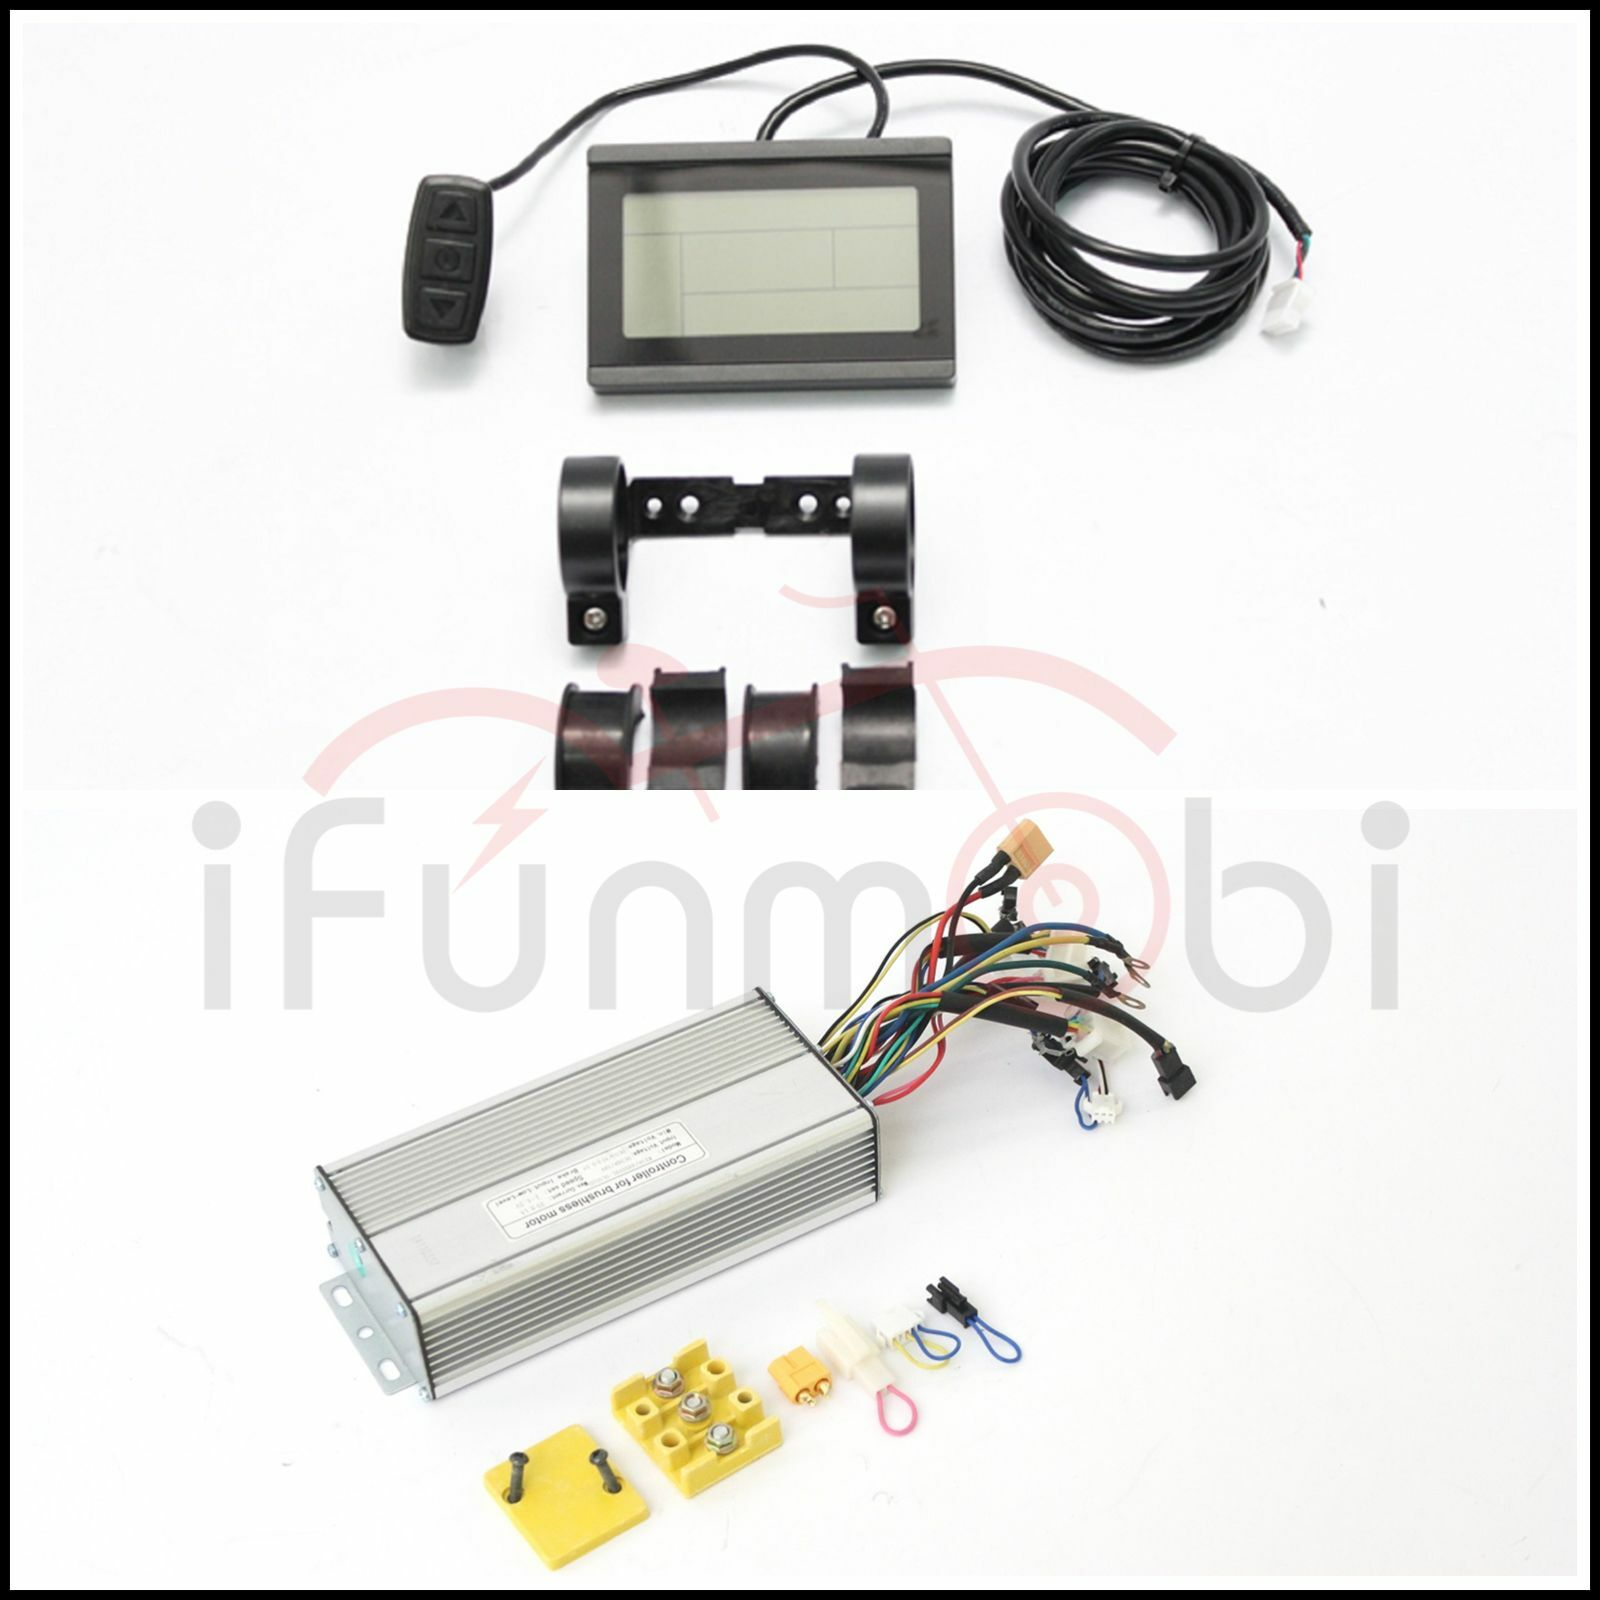 36V 48V 750W  Brushless DC Square Wave Controller 9MOSFET 25A + LCD Control Panel  online outlet sale